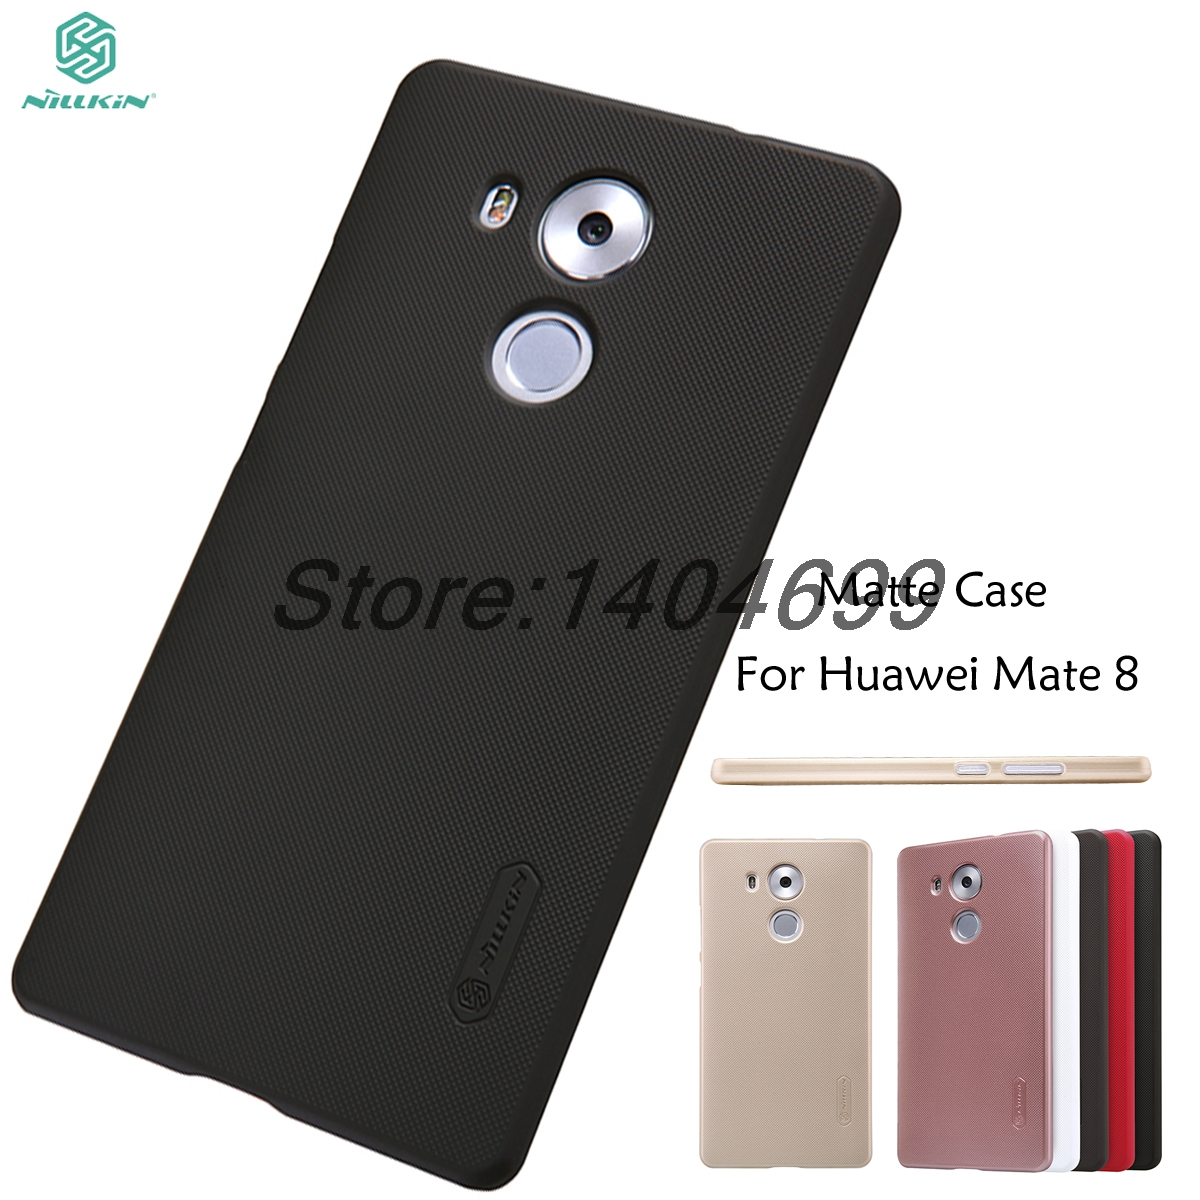 Huawei Mate 8 Case Nillkin Frosted Shield Hard Armor Back Cover Matte Case For Huawei Ascend Mate 8 Gift Screen Protector